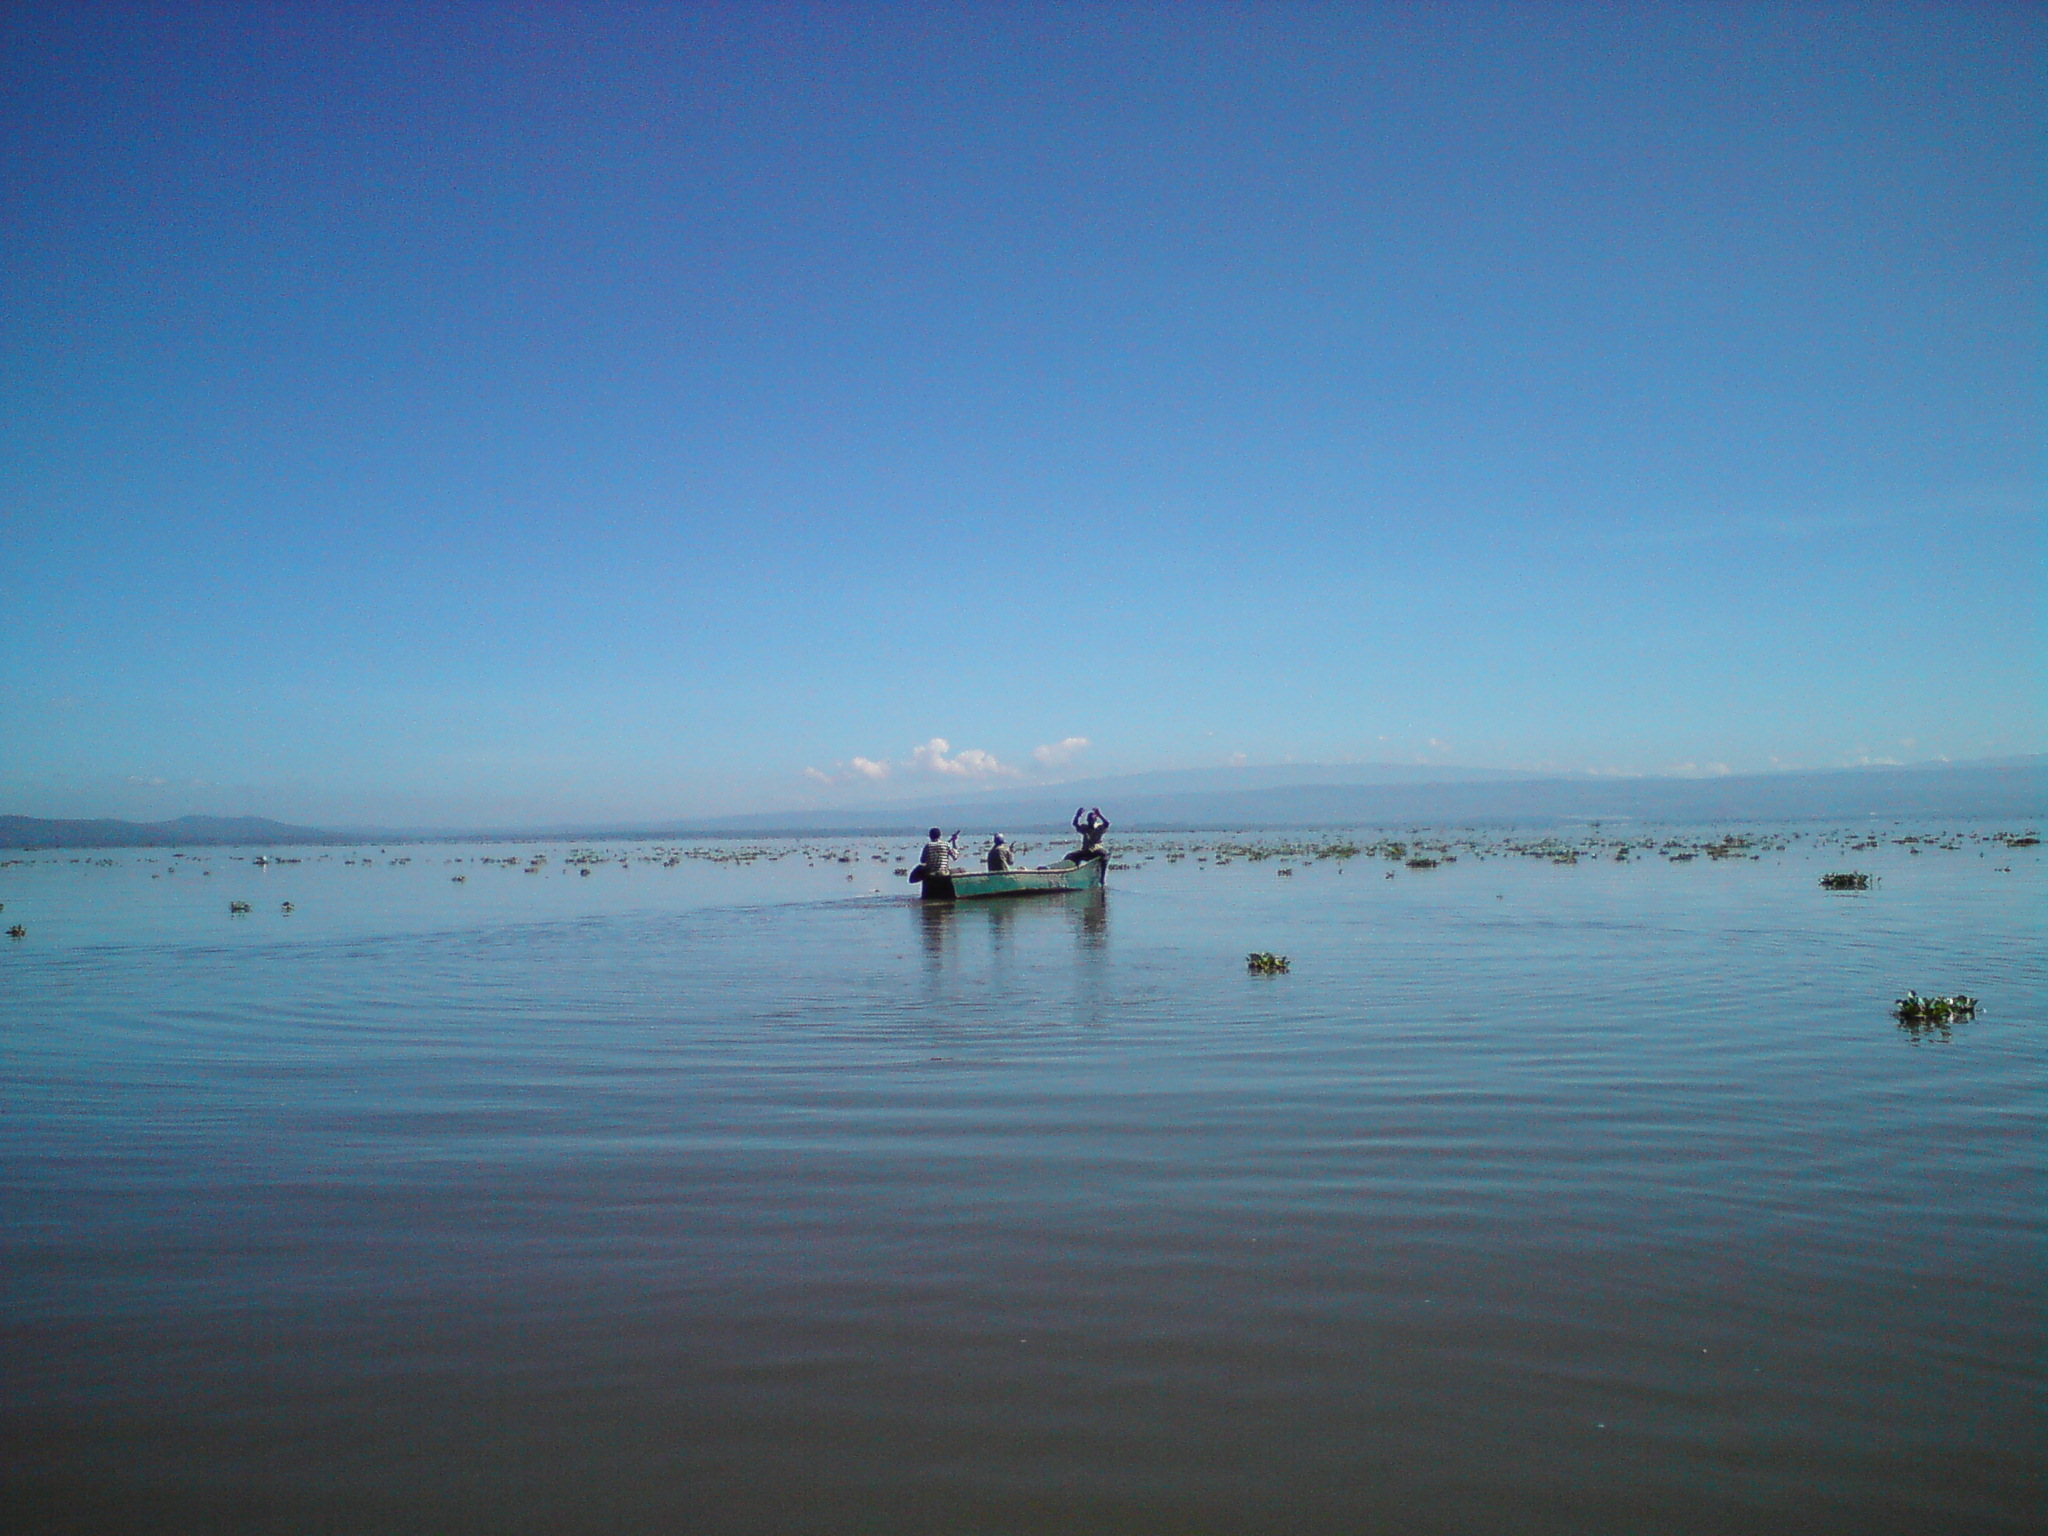 Fishermen on Lake Naivasha, Kenya. Photo taken on November 16, 2008.